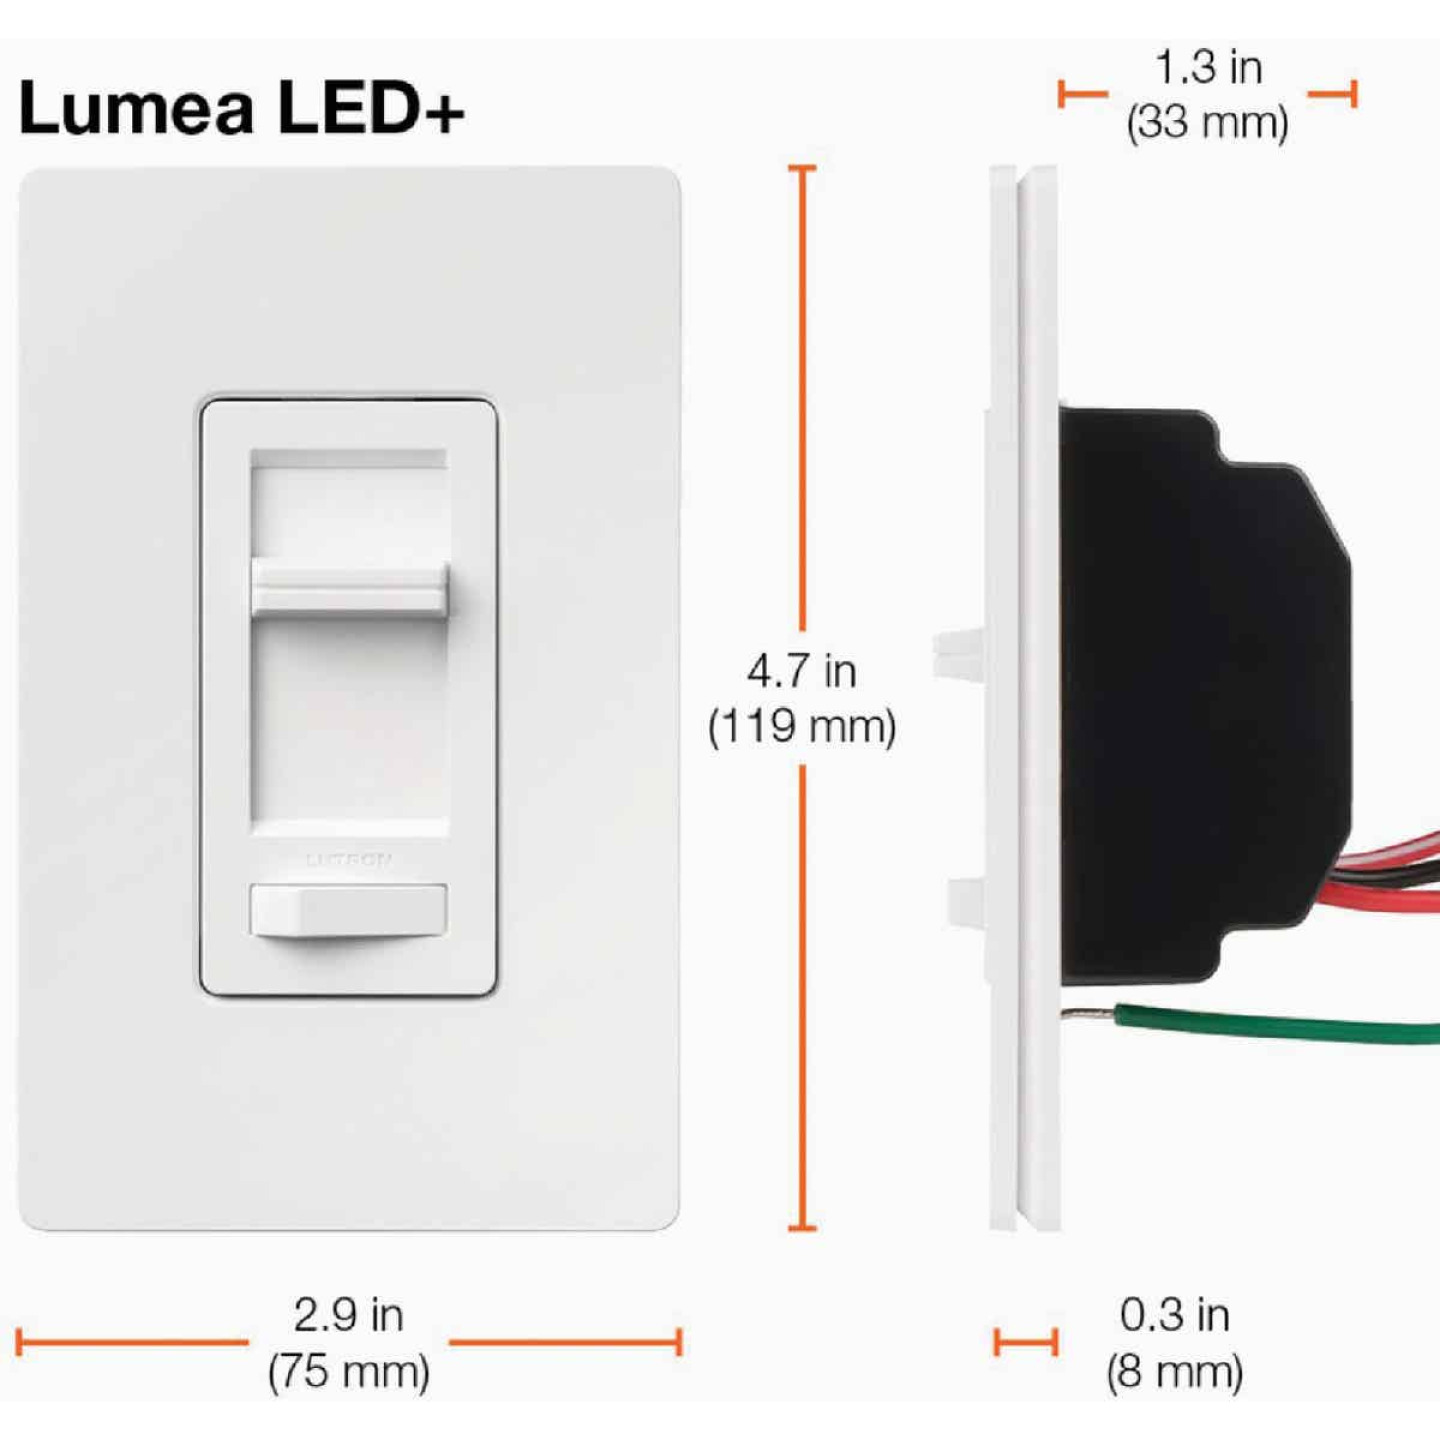 Lutron Lumea Incandescent/Halogen/LED/CFL White Slide Dimmer Switch Image 8